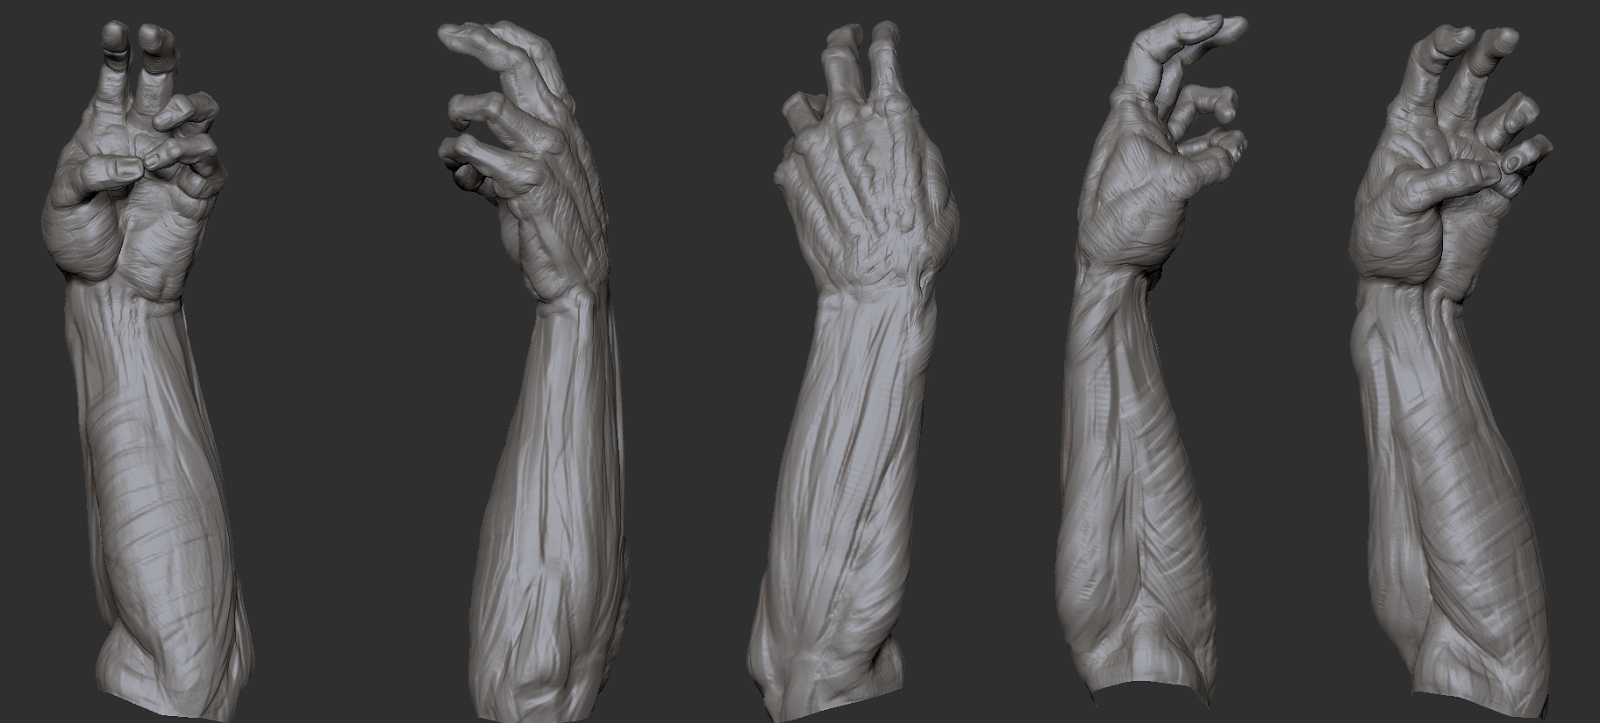 hand+study_4-21-13.png